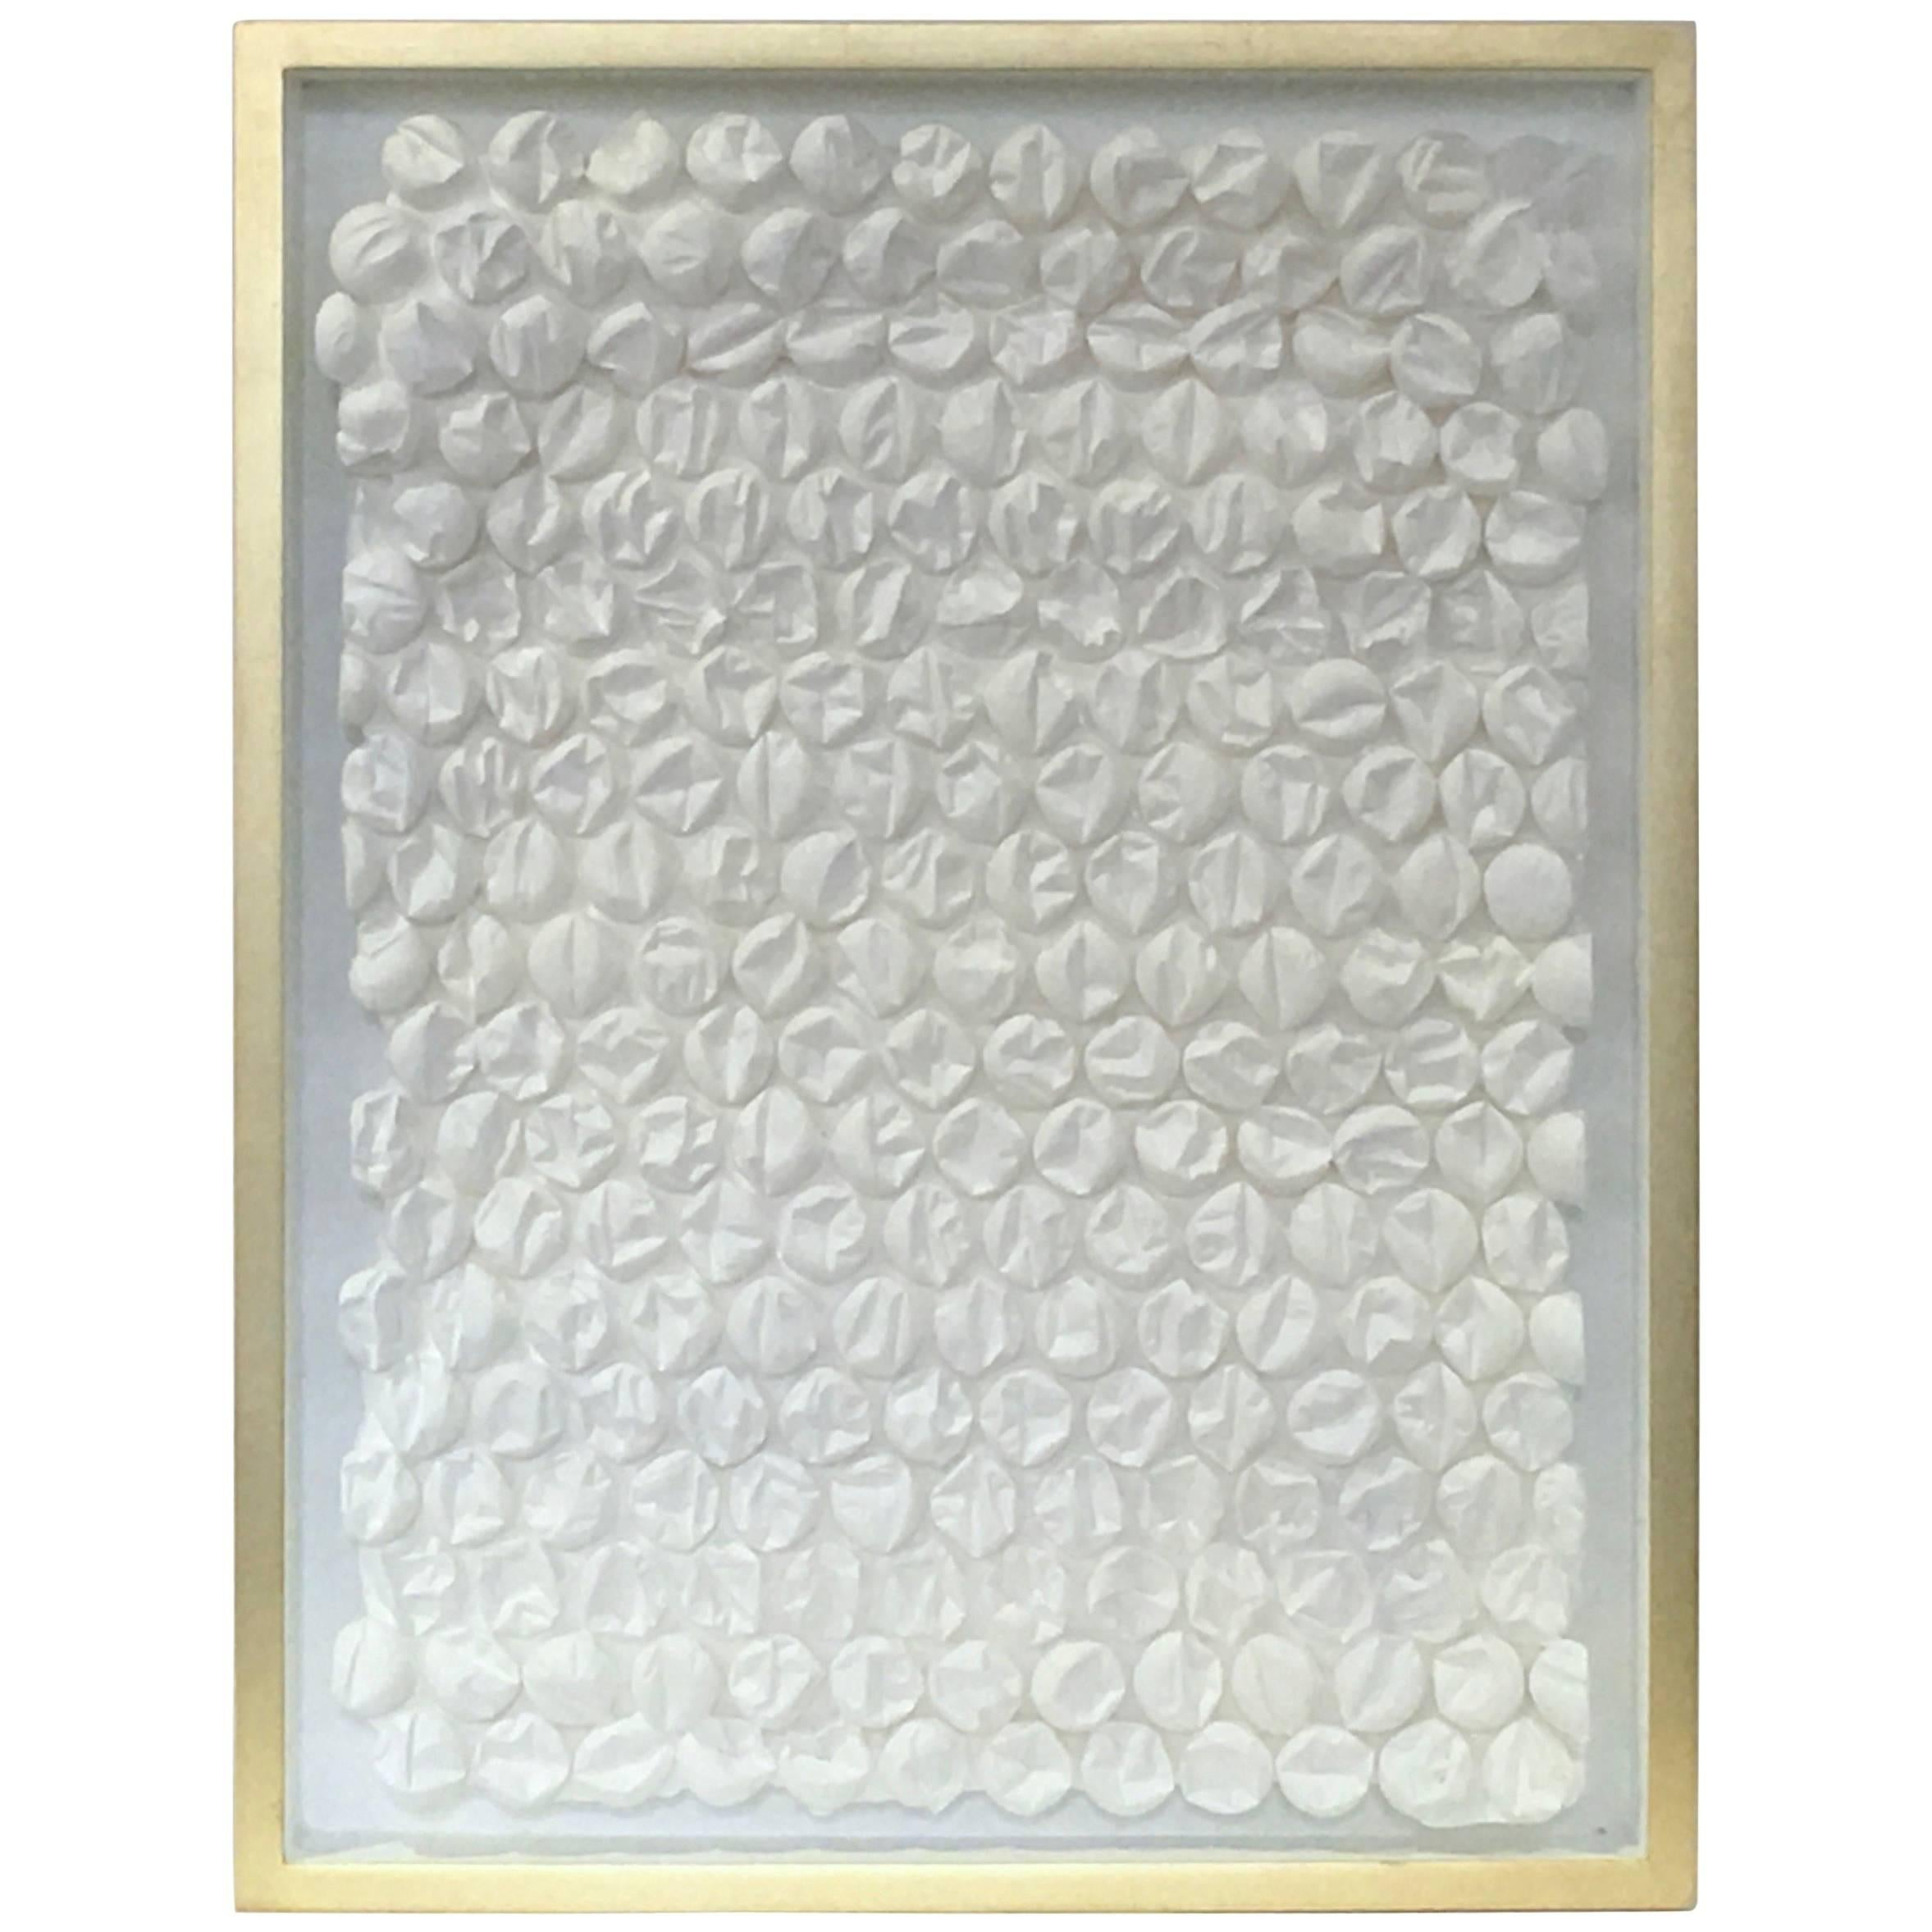 Peter Buchman  Bubble Wrap in White with Gold Leaf Frame, 2017